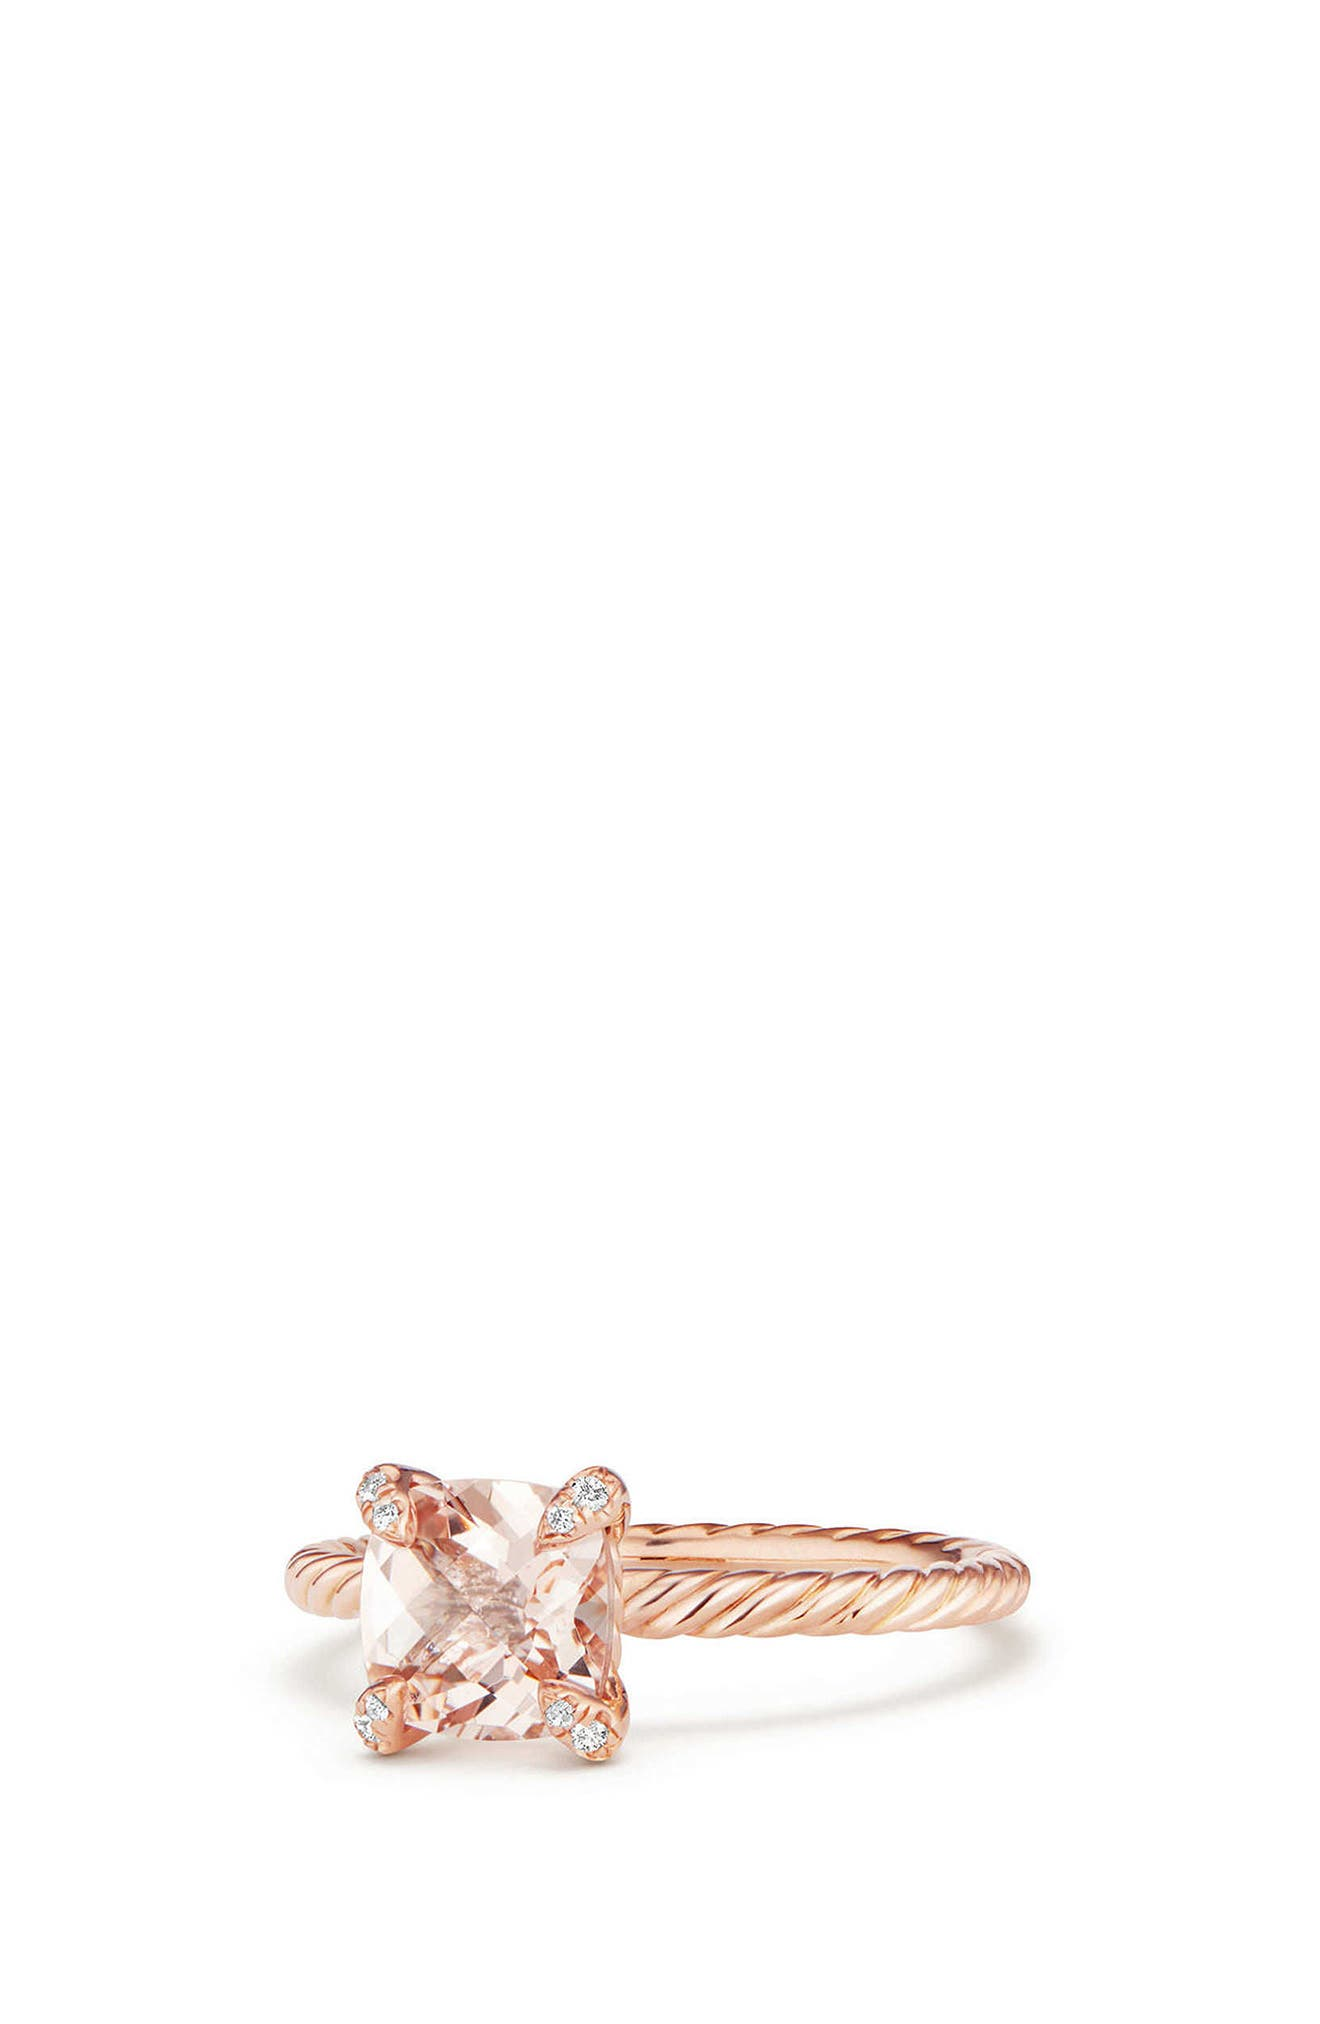 DAVID YURMAN, Chatelaine Ring with Morganite and Diamonds in 18K Rose Gold, Alternate thumbnail 3, color, ROSE GOLD/ DIAMOND/ MORGANITE